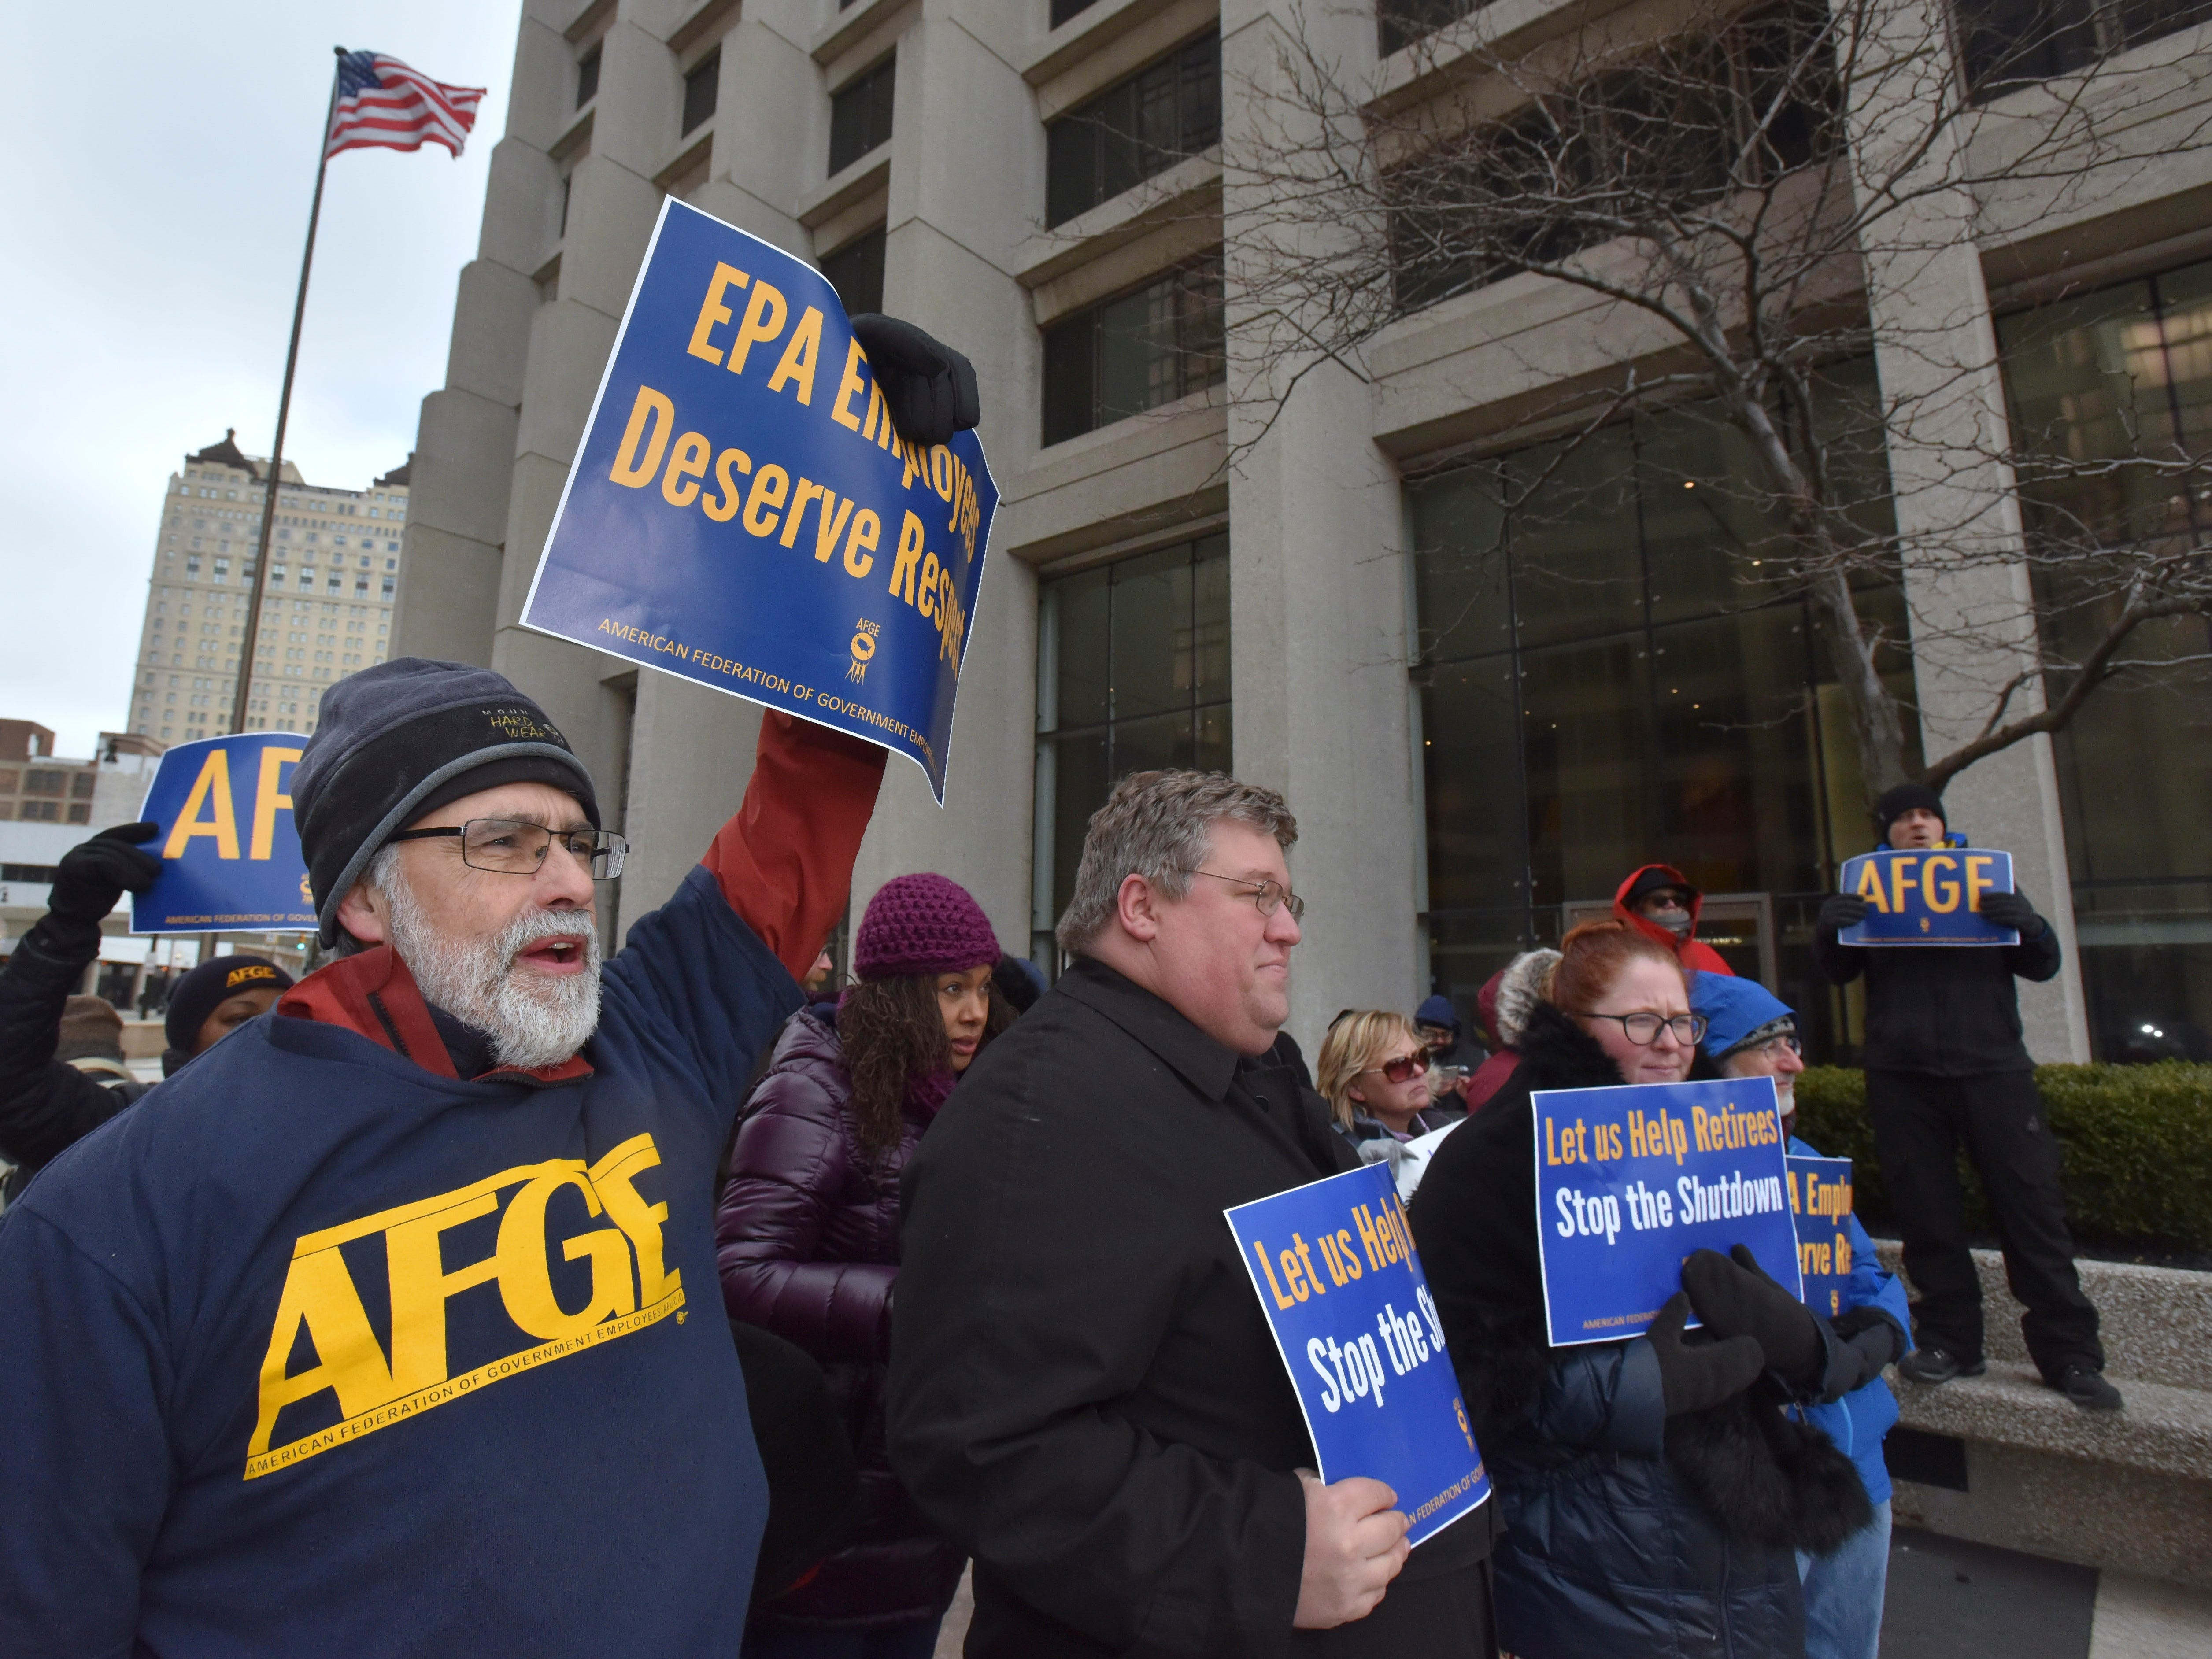 EPA Mechanical Engineer Tad Wysor, left, of Ypsilanti, listens to speakers. He is V.P. of AFGE Local 3907.